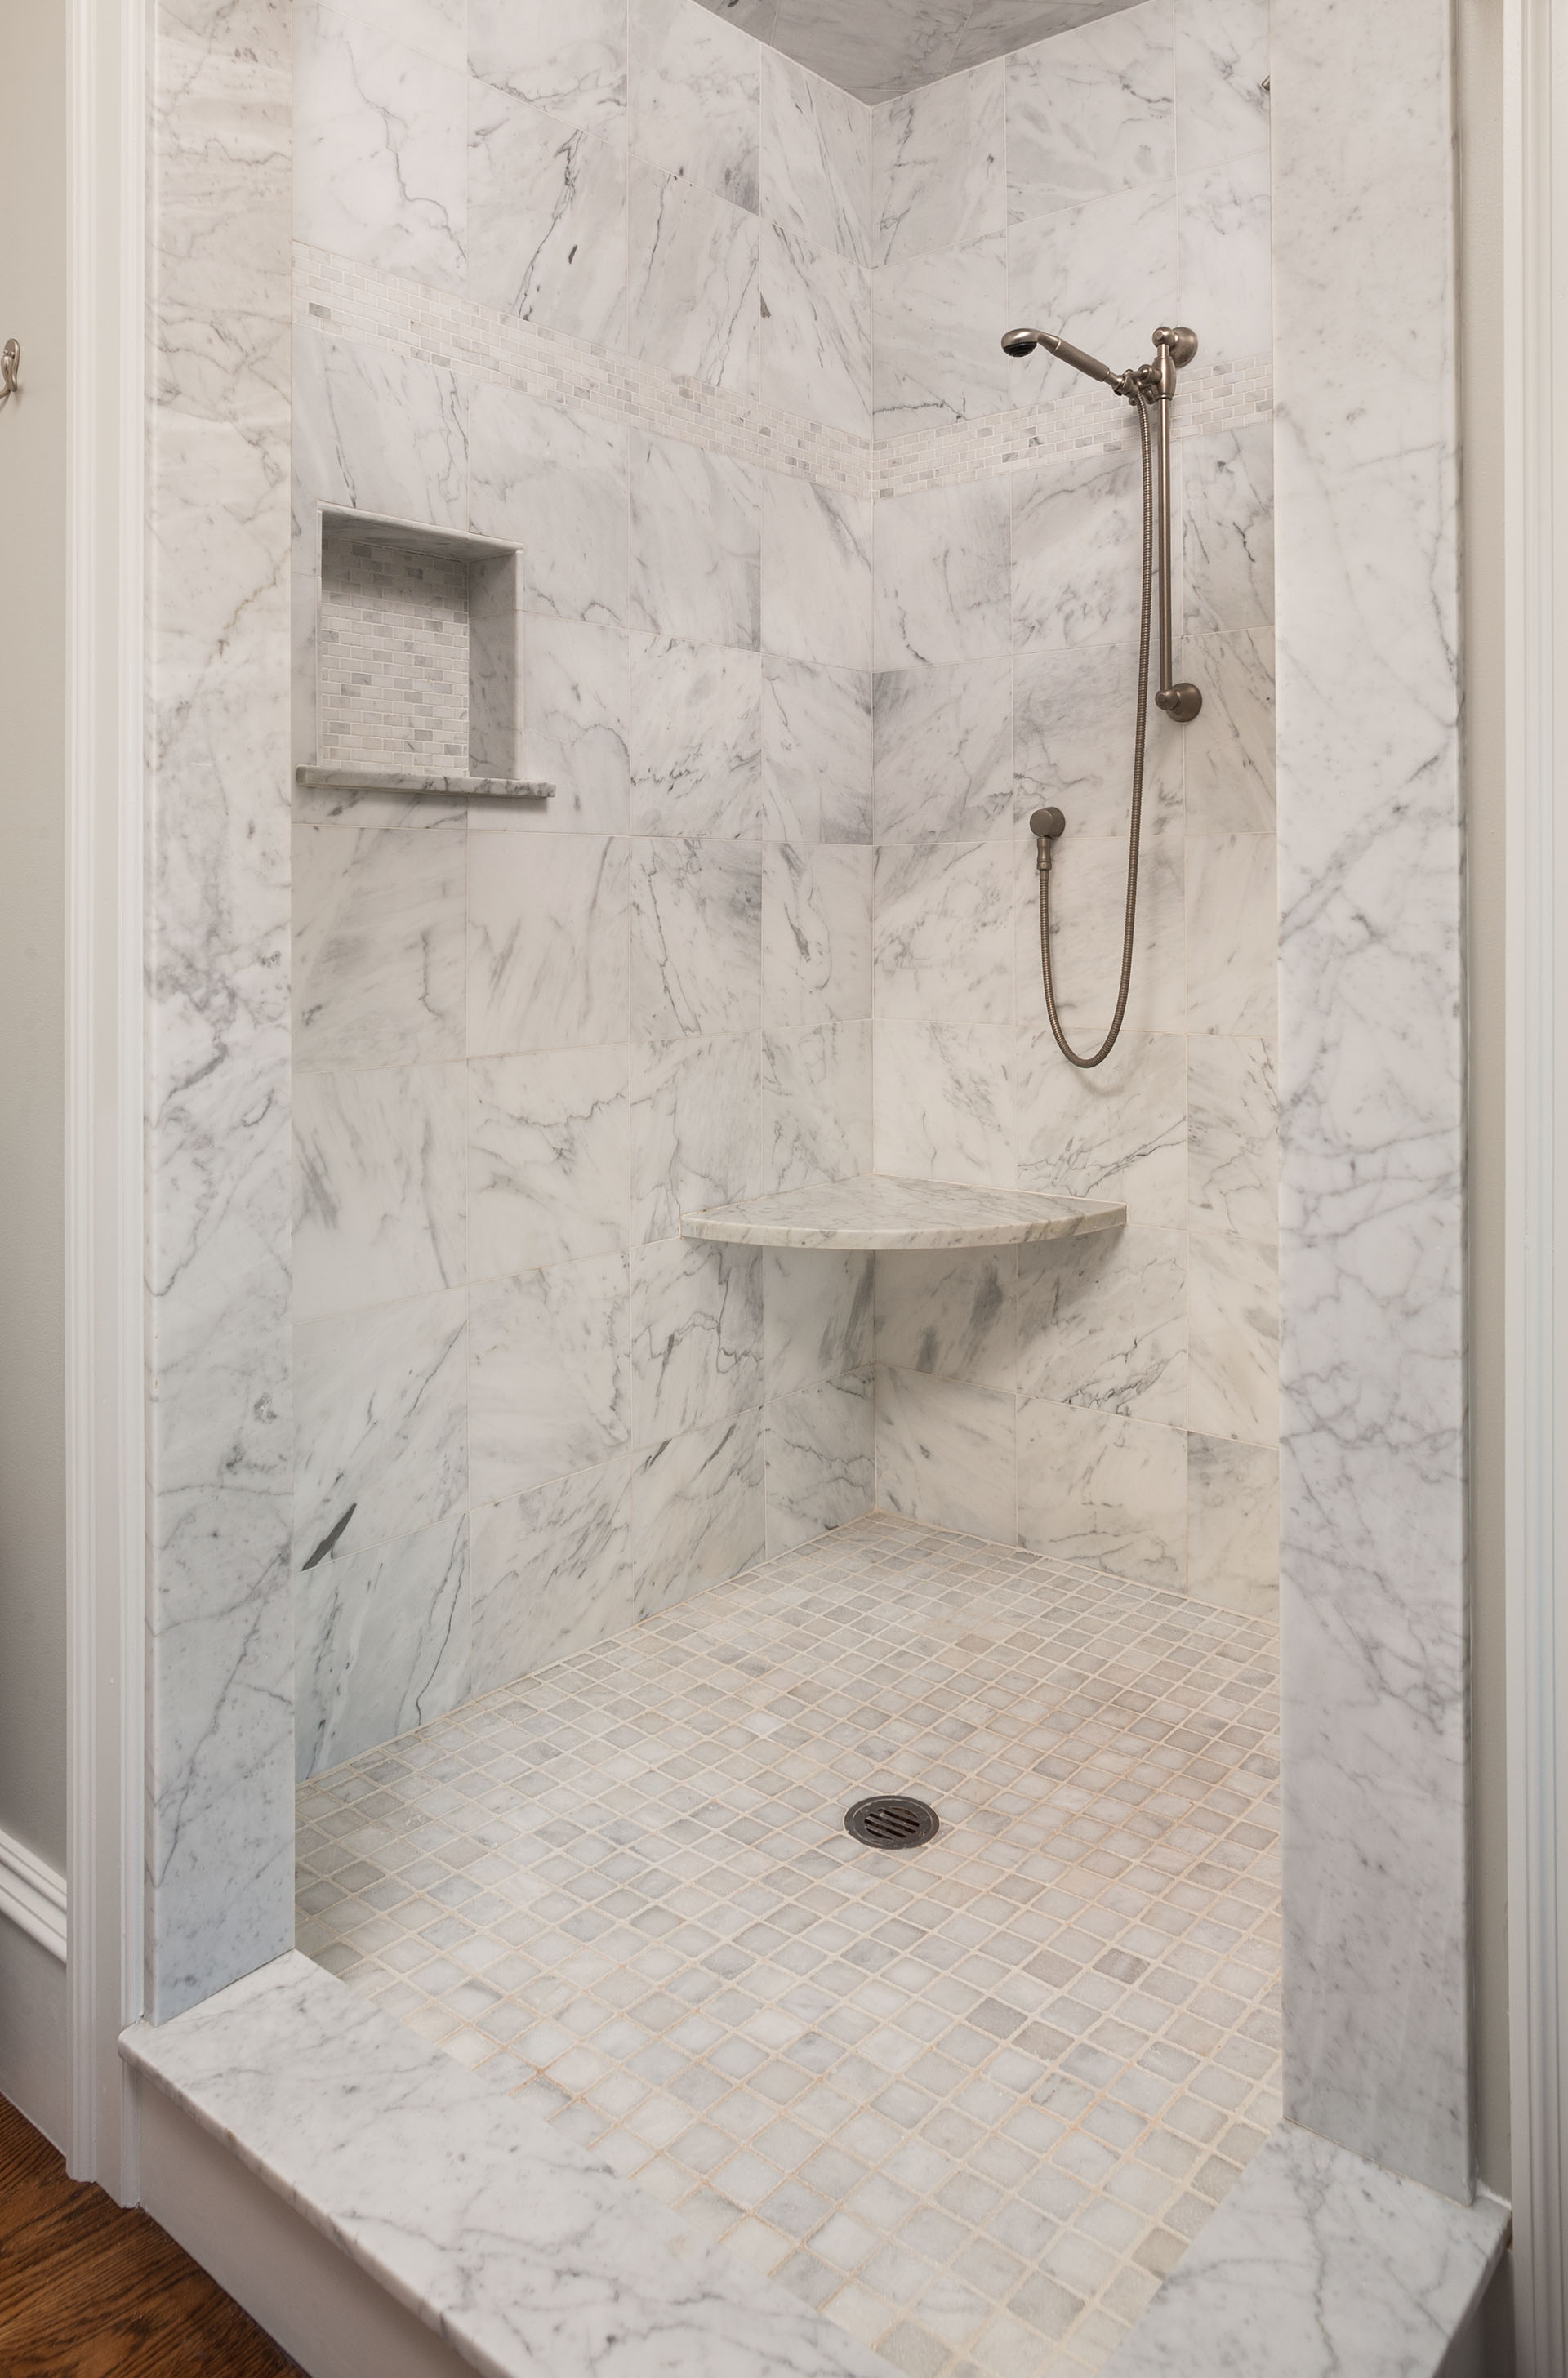 how to regrout bathroom tile inc amp image gallery proview 23459